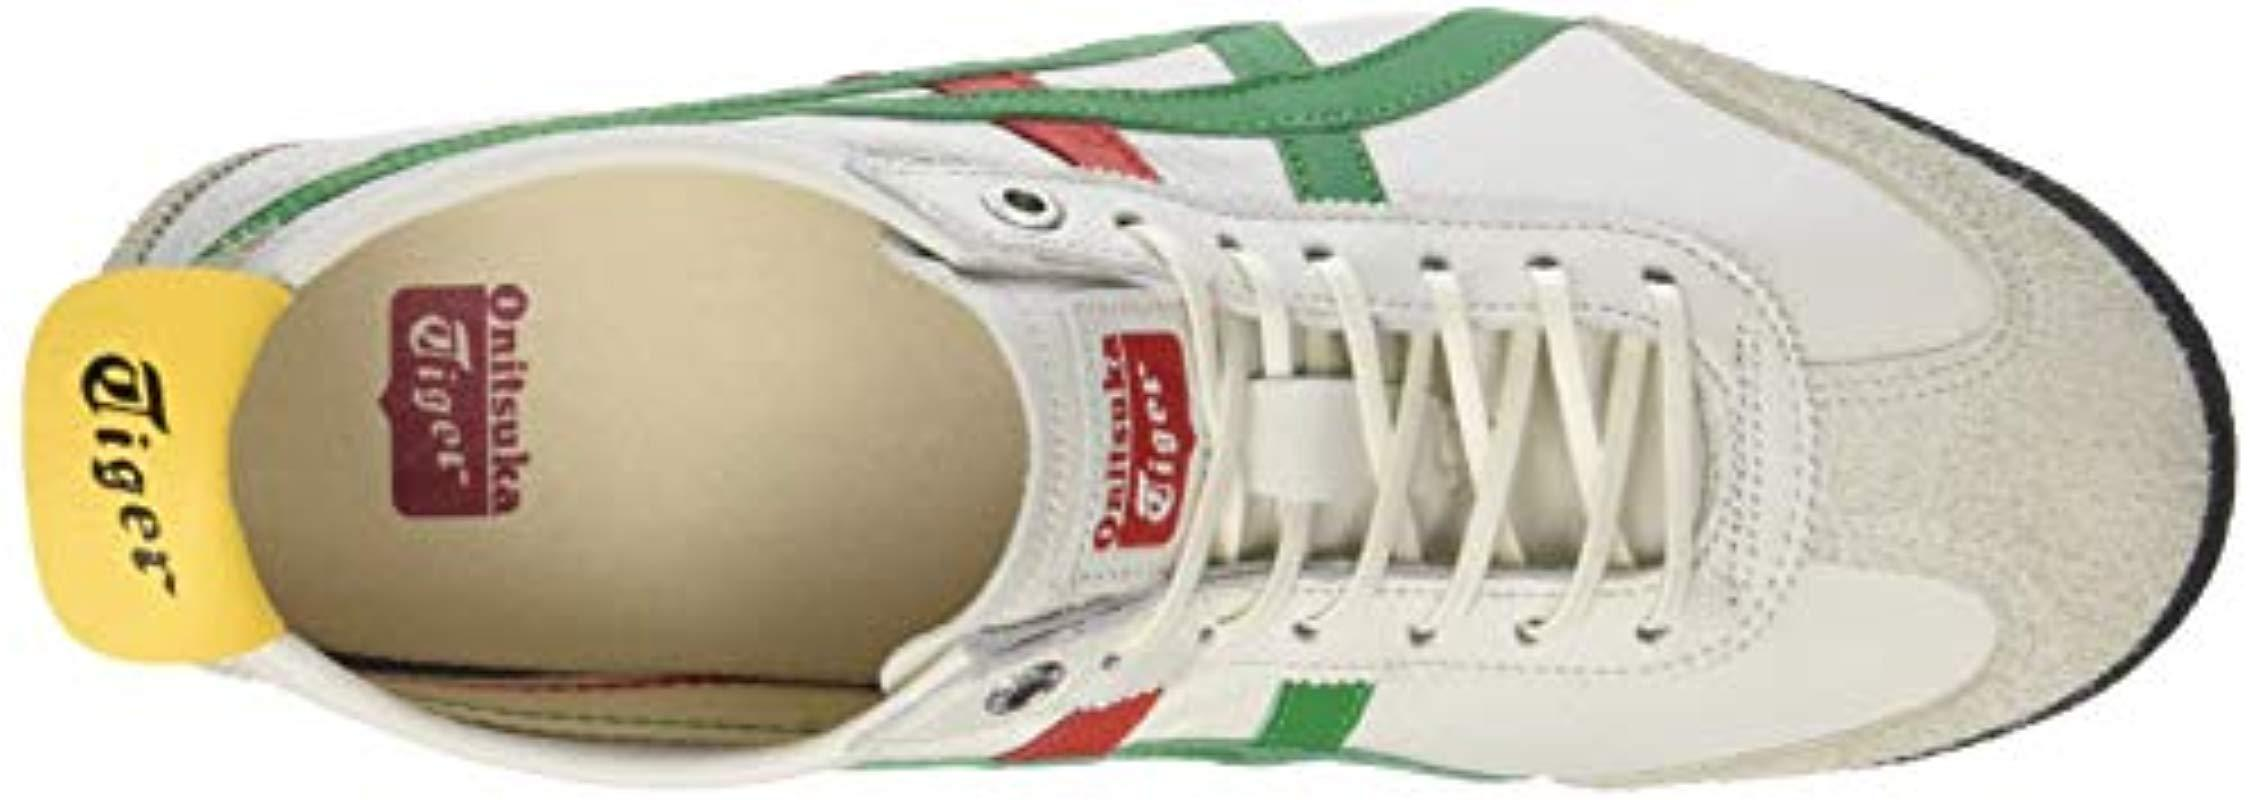 b852c4144003c Asics Adults' Onitsuka Tiger Mexico 66 Sd Low-top Sneakers in Green ...